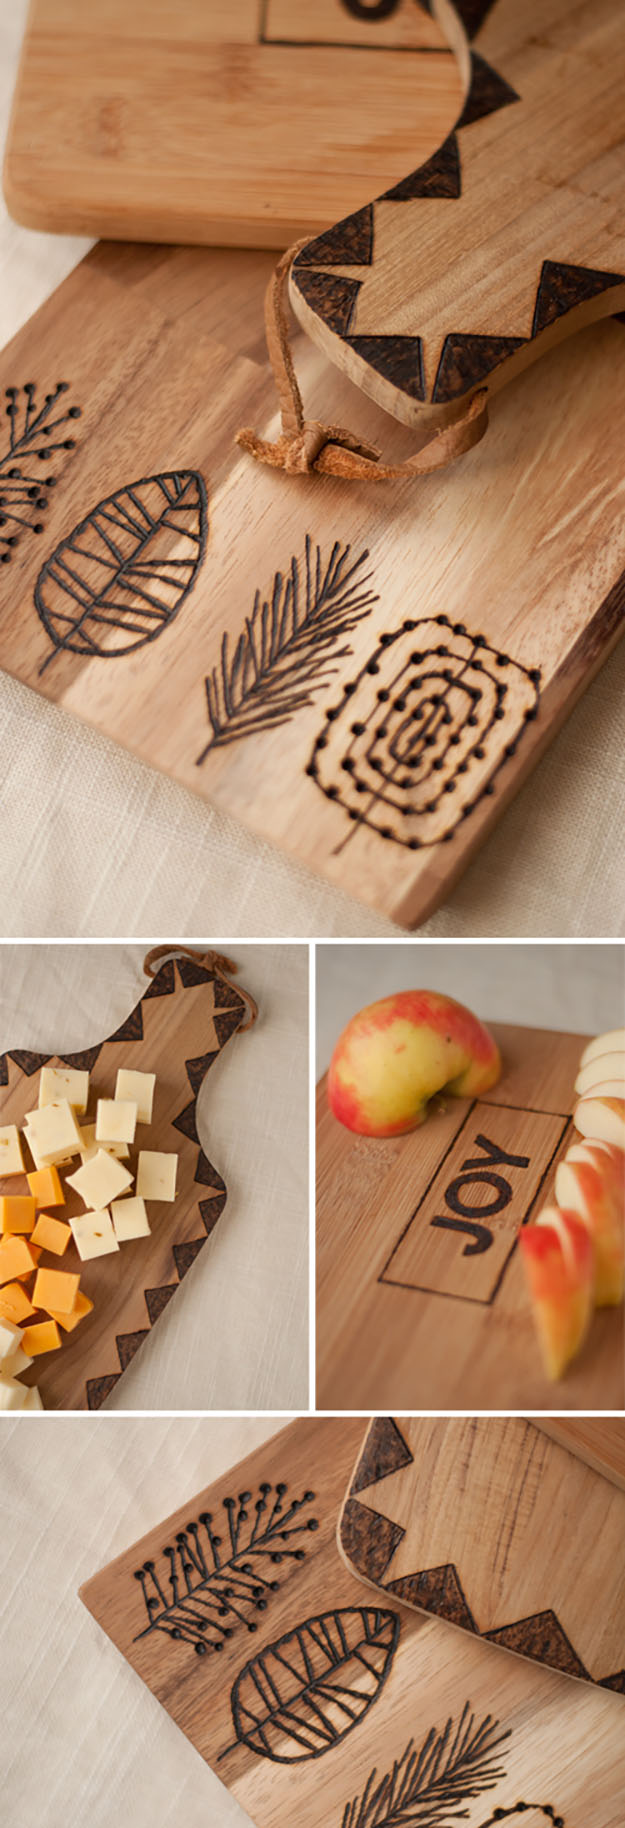 DIY Gifts for Friends & Family | DIY Kitchen Ideas | Etched Wooden Cutting Boards | DIY Projects & Crafts by DIY JOY#diygifts #christmas #diy #gifts